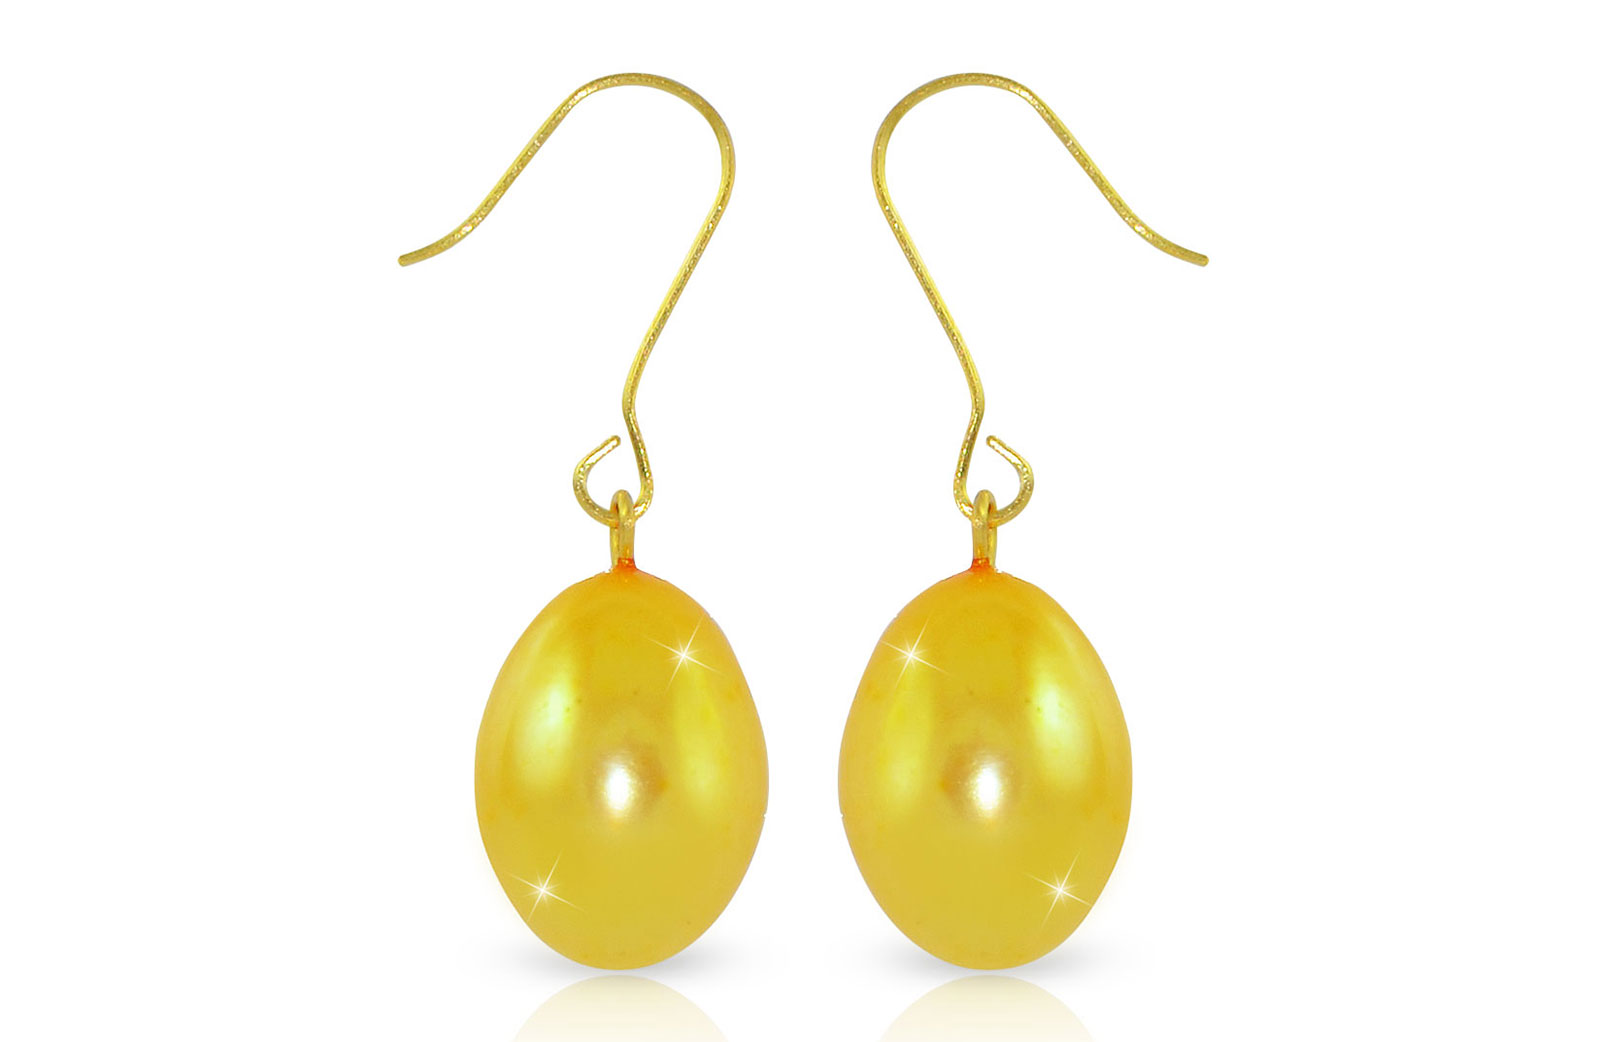 Vera Perla  9-10mm Big Golden Baroque Pearls Earrings in 18K Gold